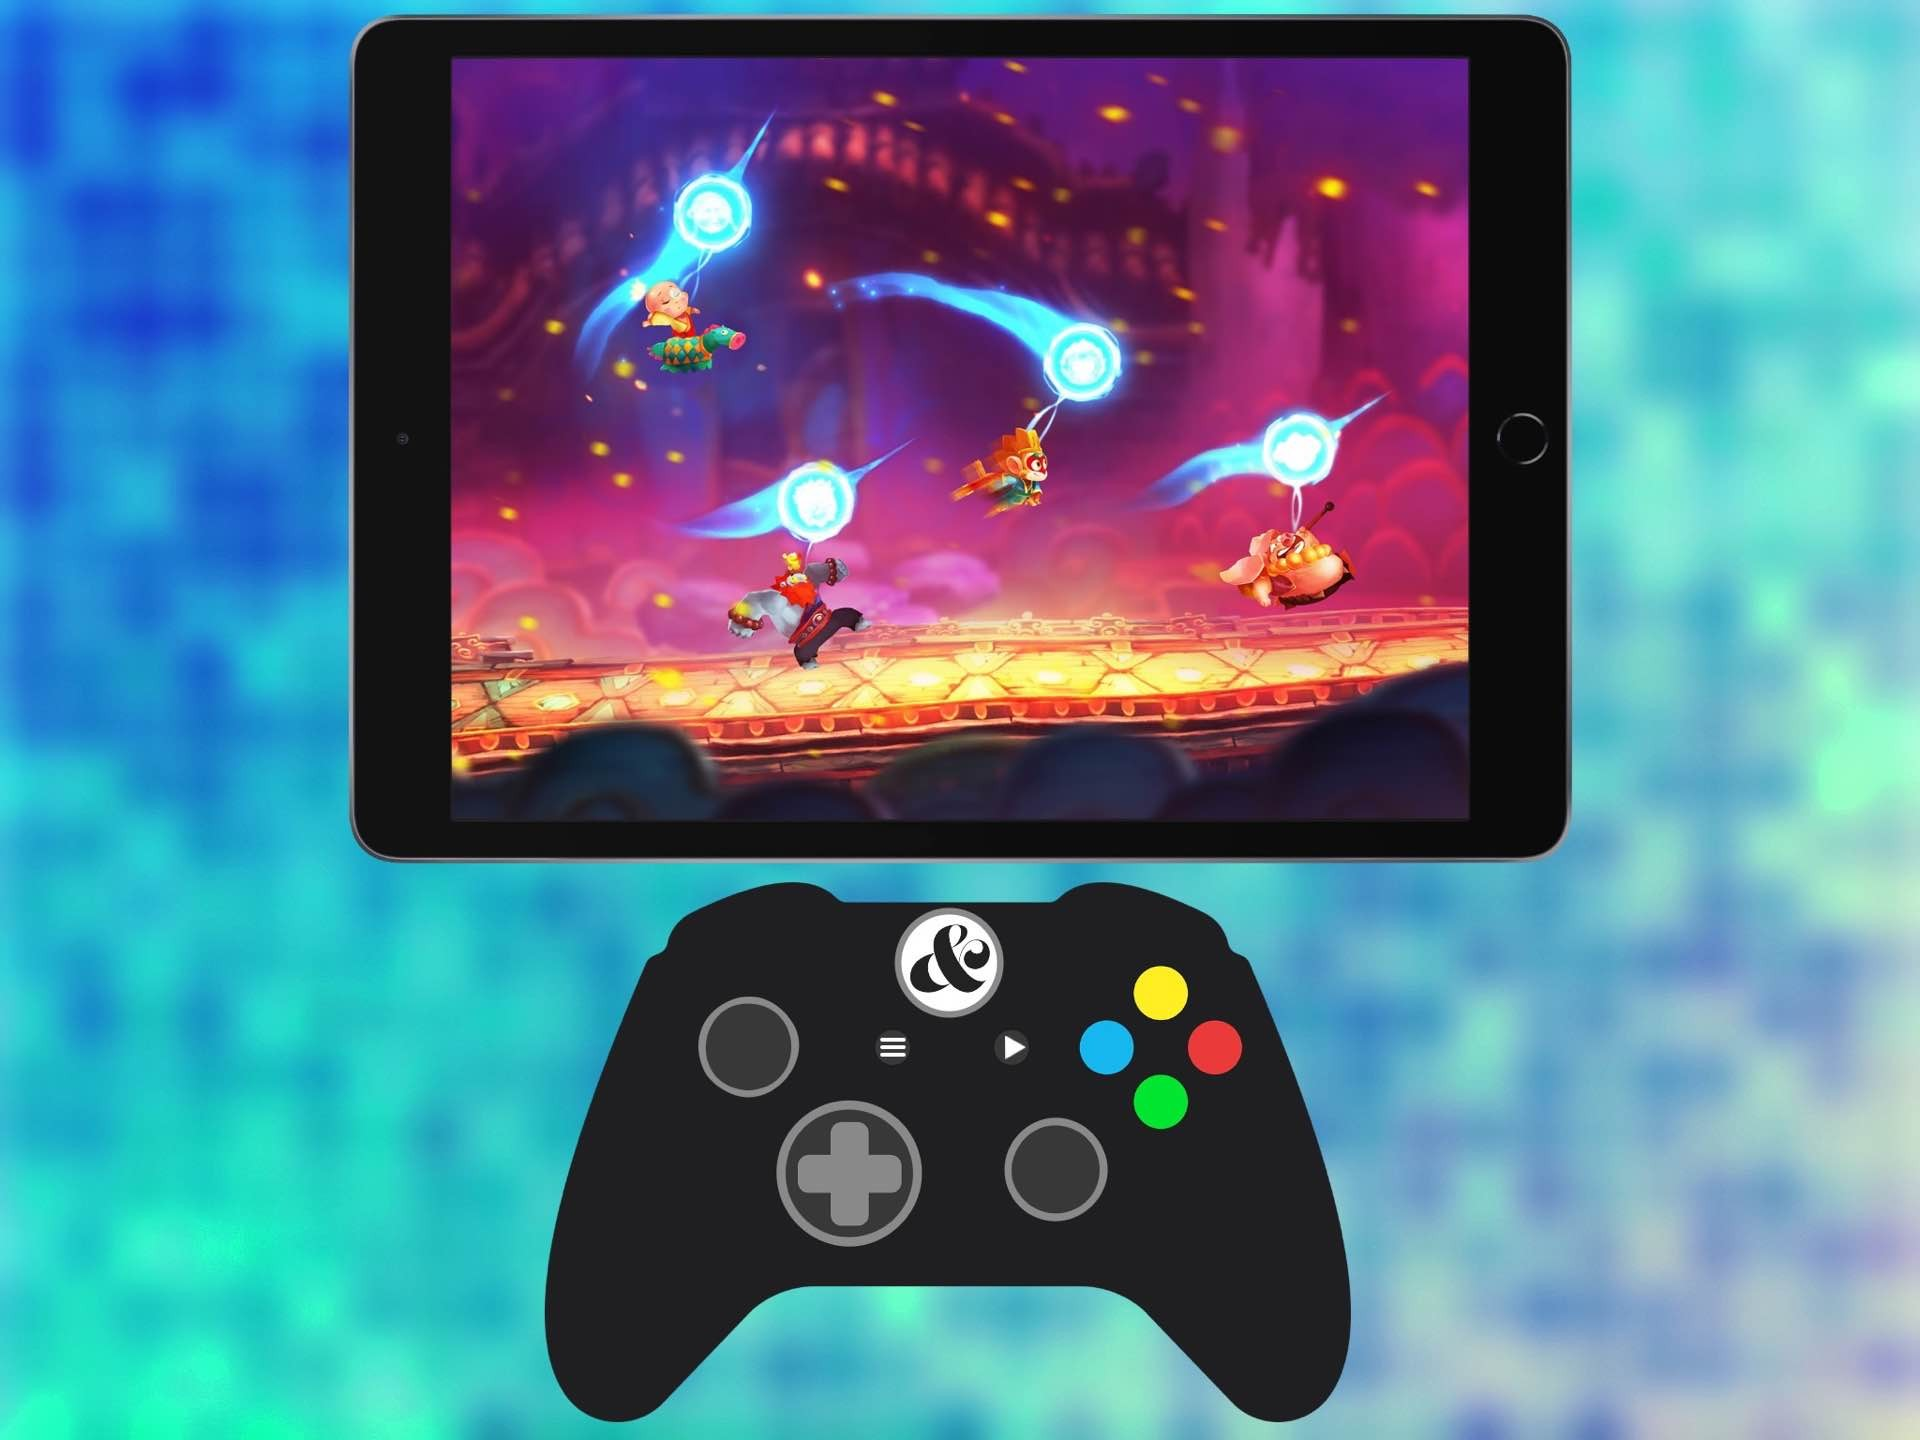 11-ios-games-you-should-be-playing-right-now-guide-hero-chris-gonzales